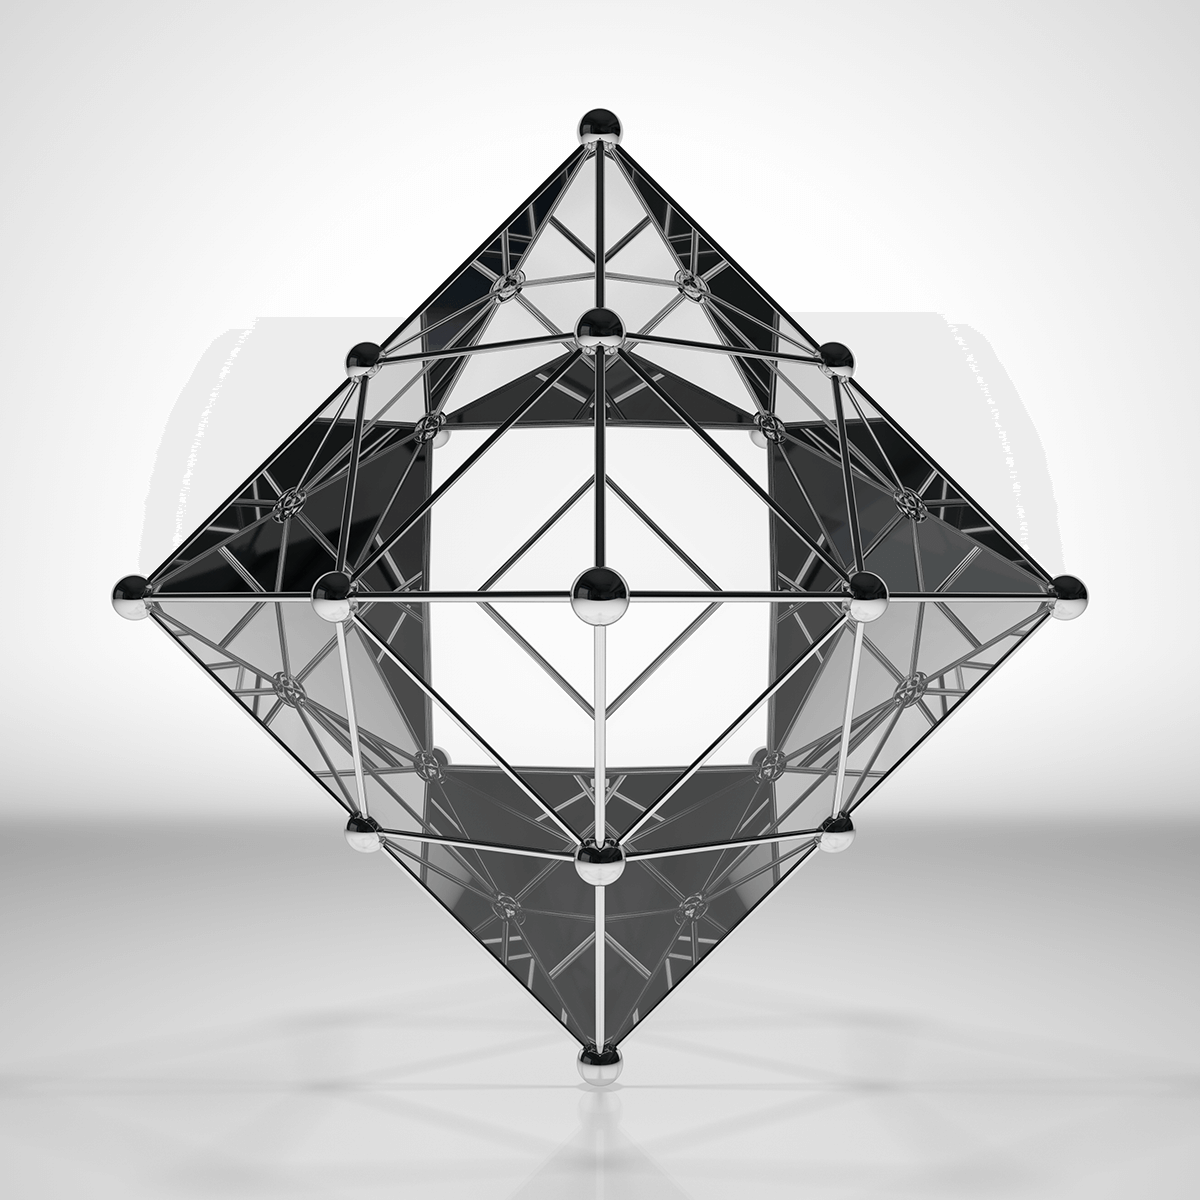 3D render of a piramid shape made of glass and metal orbs